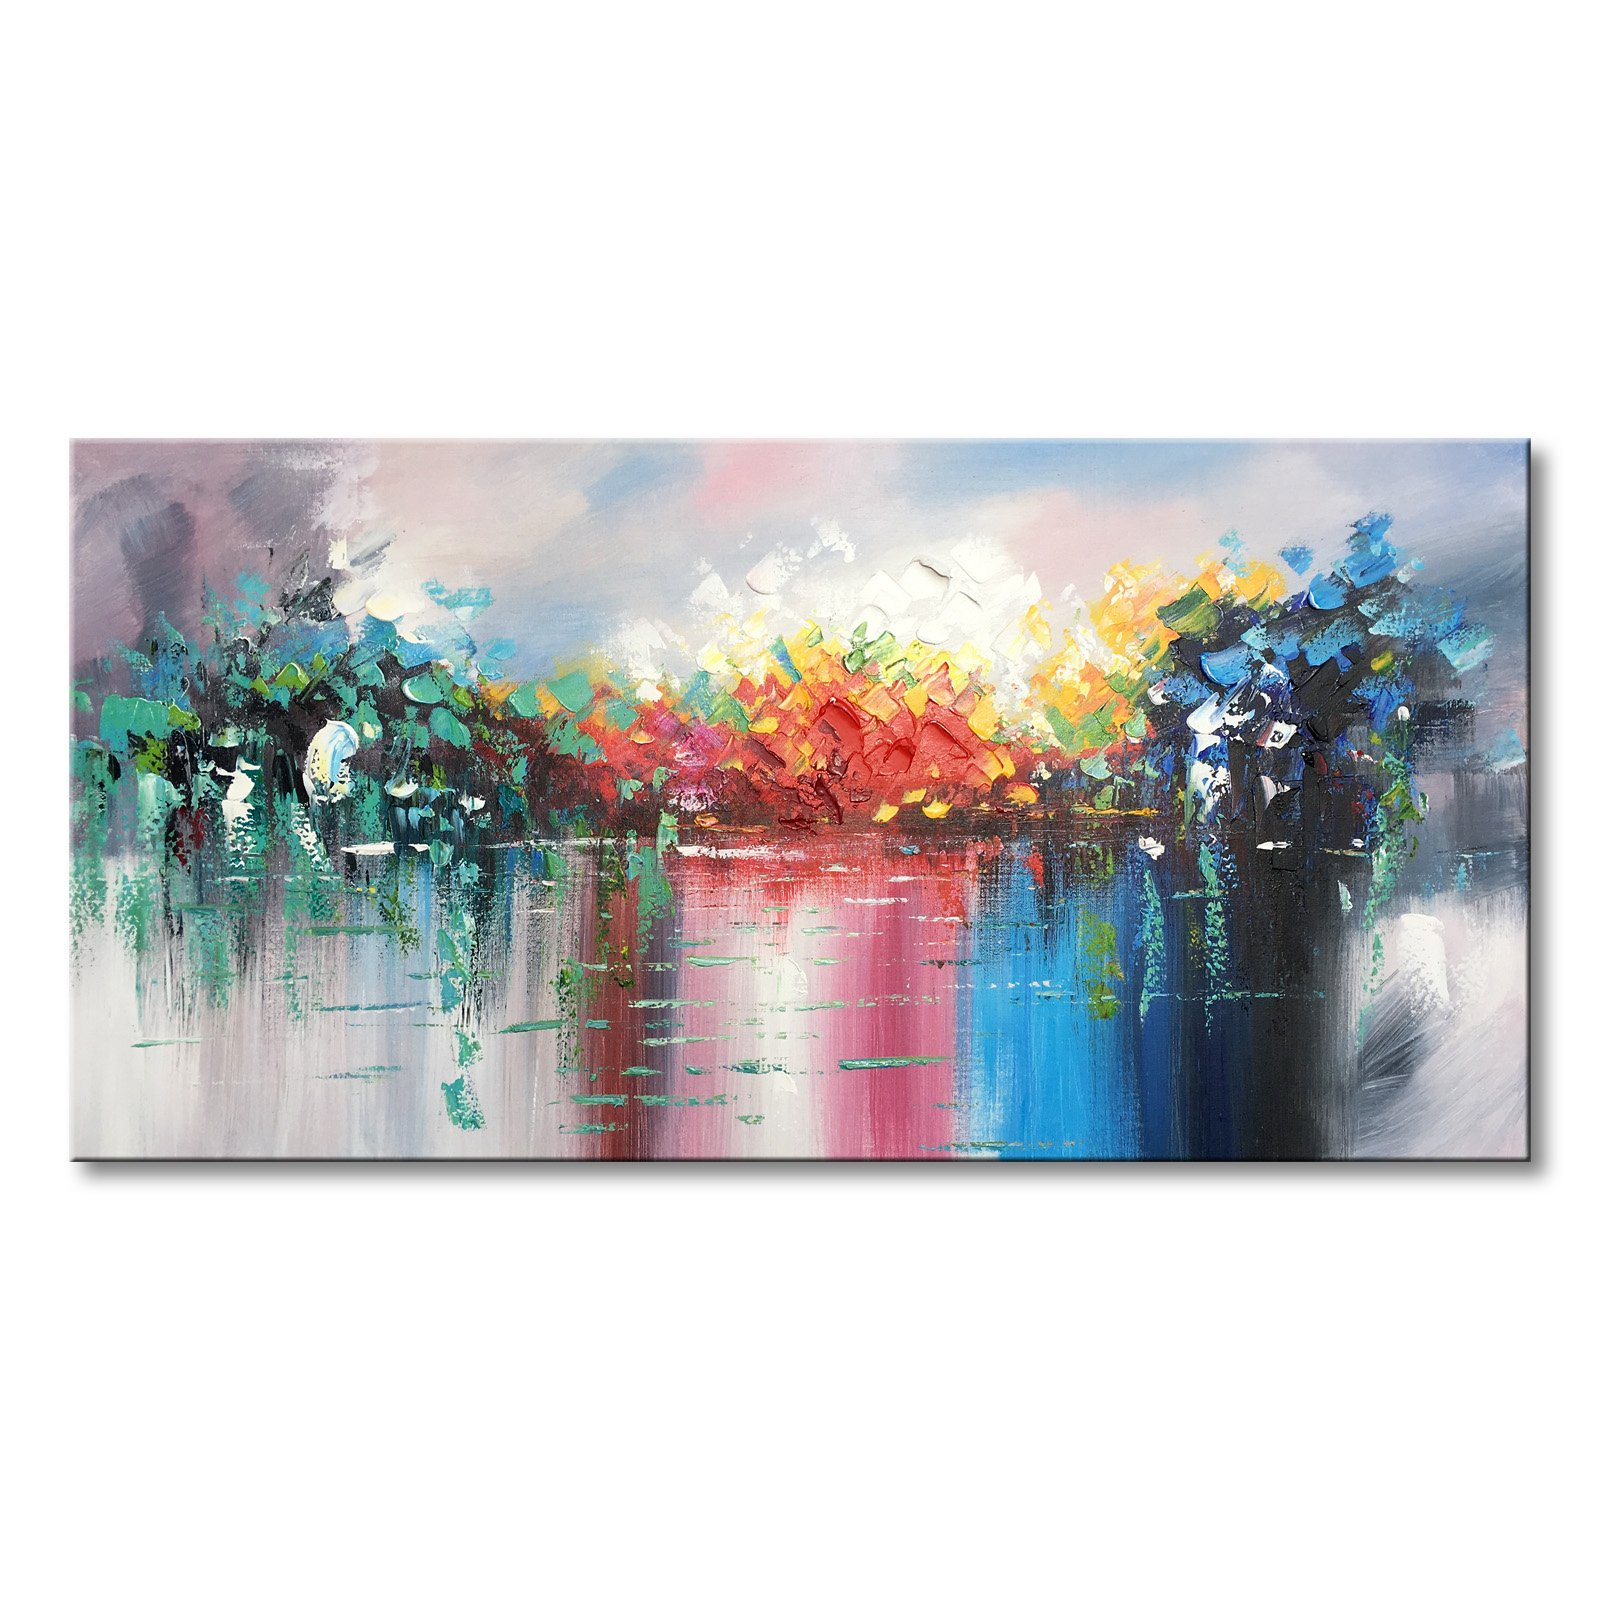 Abstract Landscape Canvas Wall Art Handmade Modern Oil Paintings Lake Scenery Picture by Winpeak Art